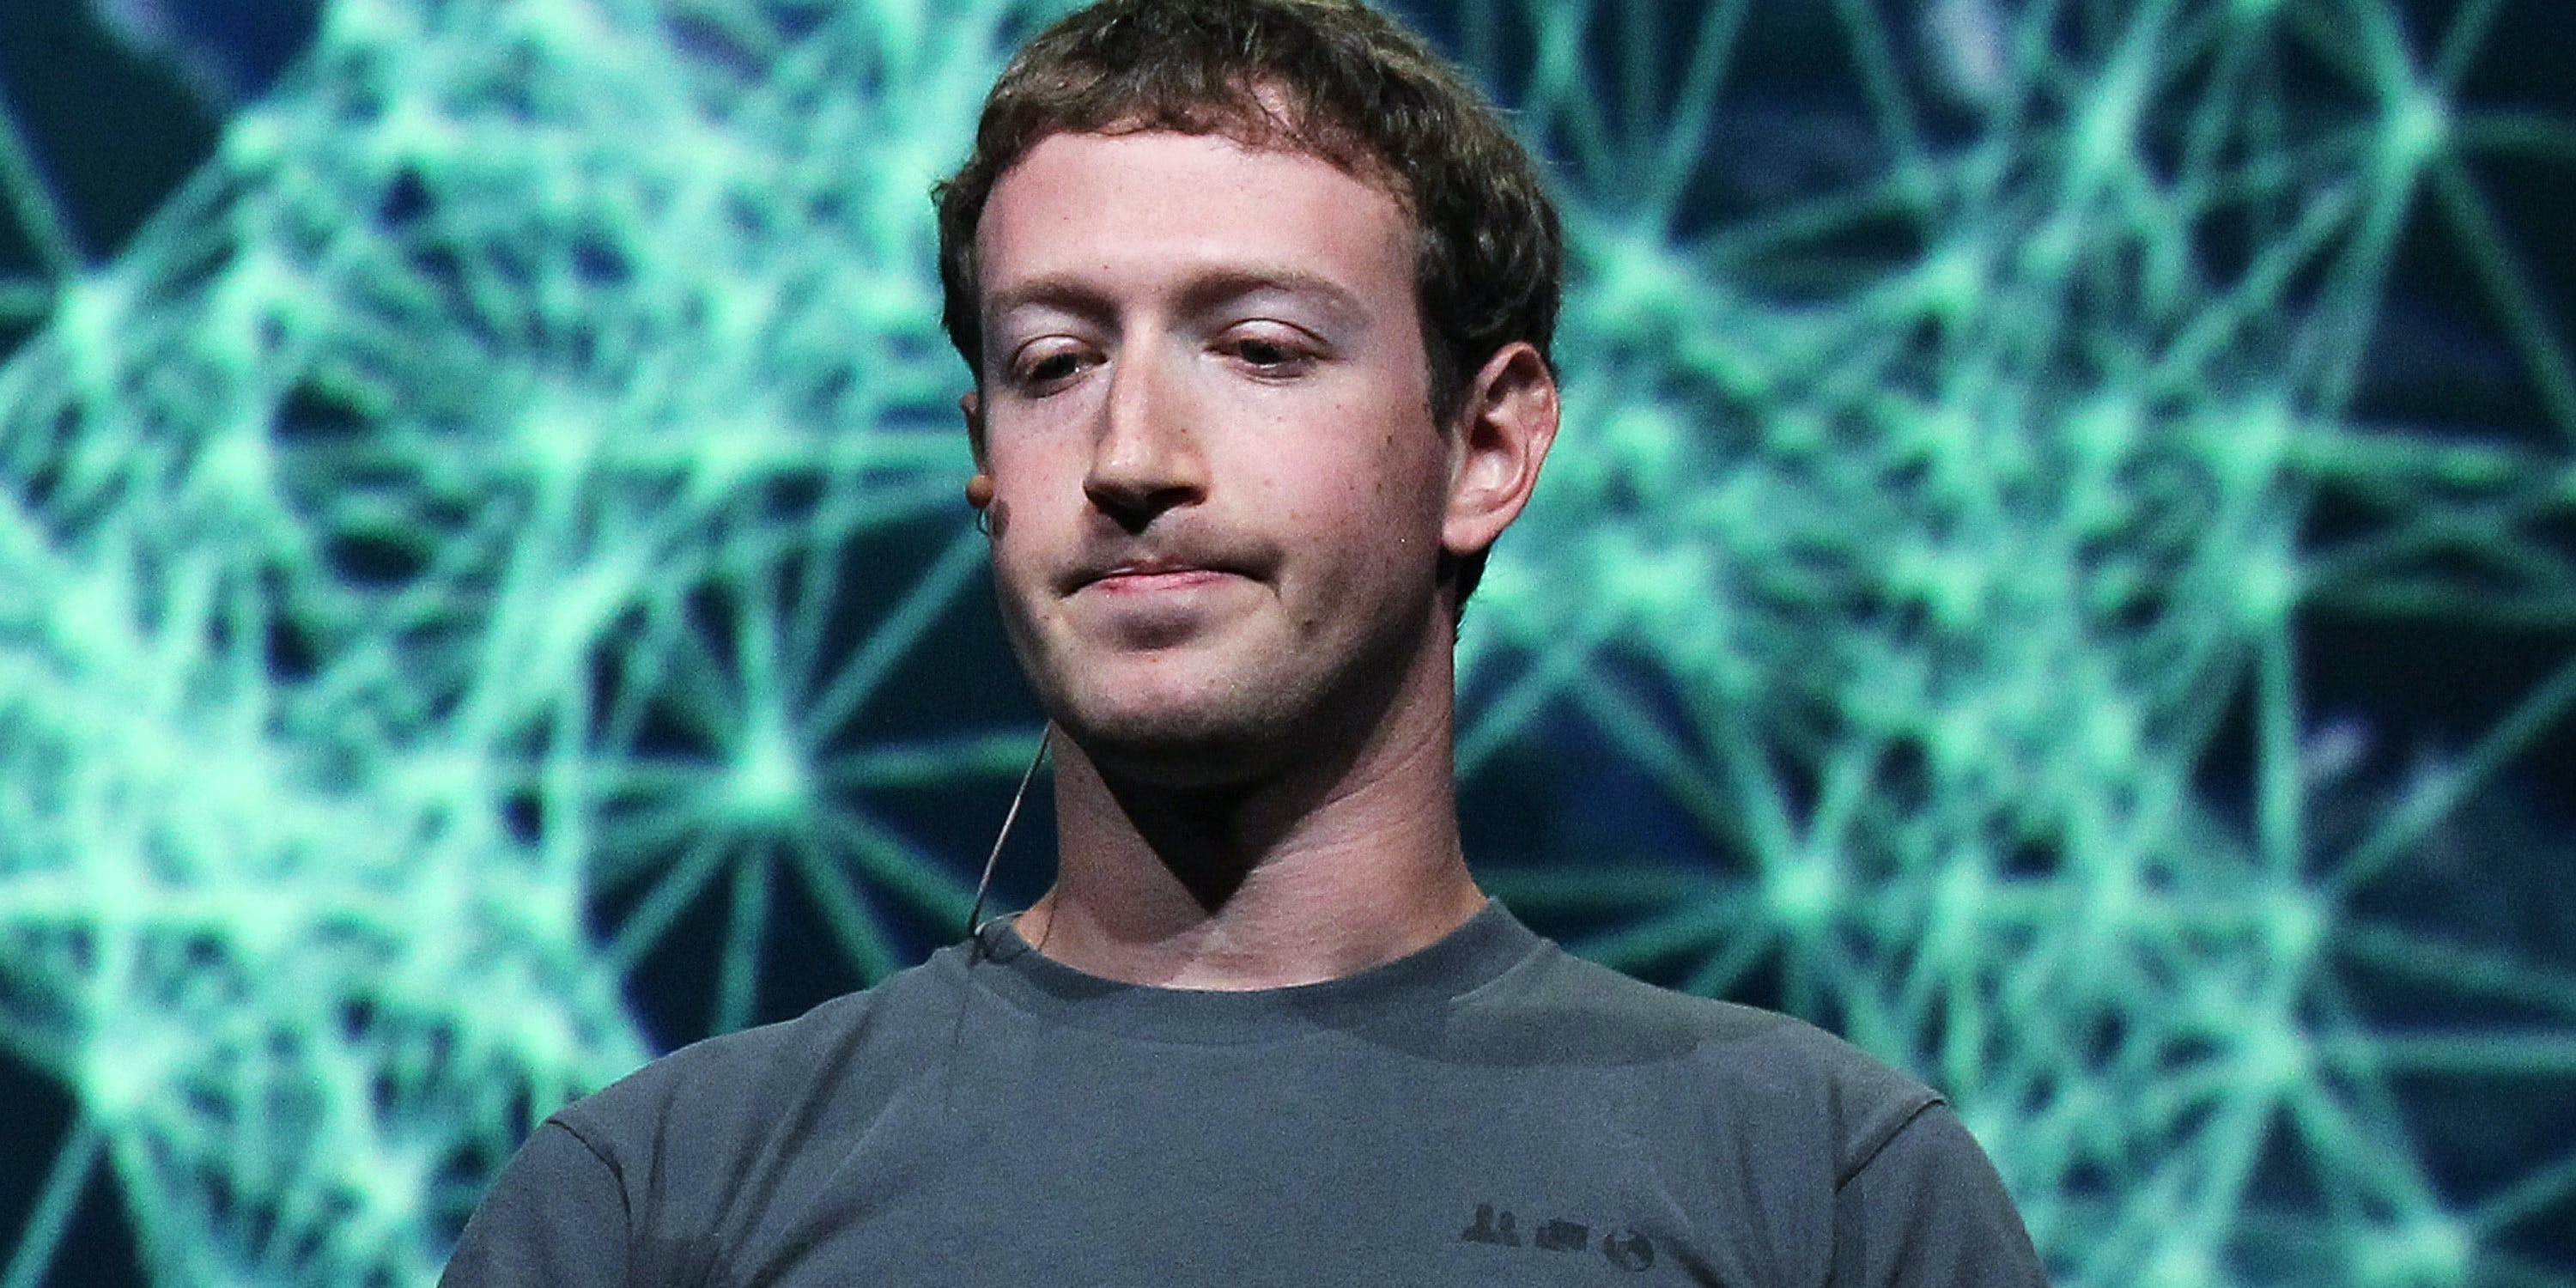 SAN FRANCISCO, CA - SEPTEMBER 22:  Facebook CEO Mark Zuckerberg pauses as he delivers a keynote address during the Facebook f8 conference on September 22, 2011 in San Francisco, California. Facebook CEO Mark Zuckerberg kicked off the conference introducing a Timeline feature to the popular social network.  (Photo by Justin Sullivan/Getty Images)